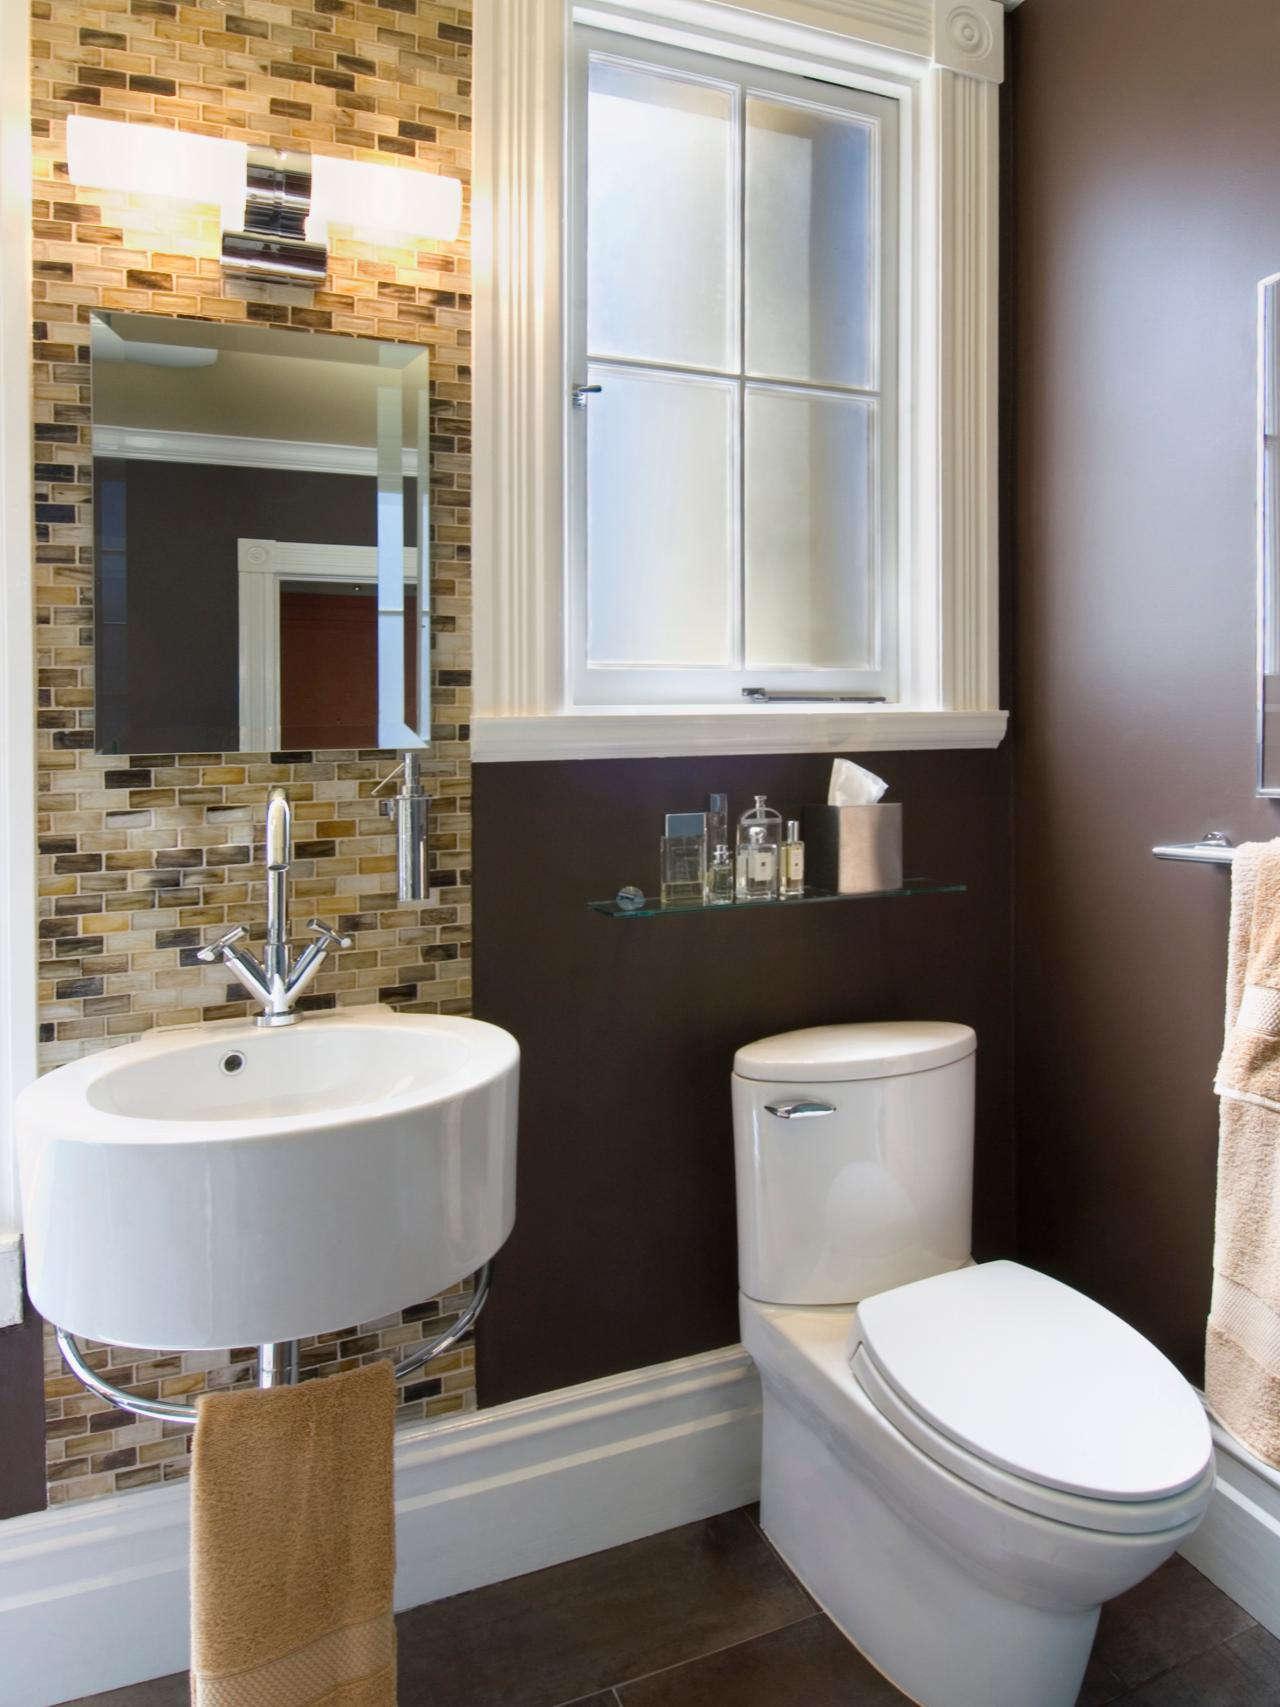 Small Bathroom Images Modern Small Bathrooms Big Design Hgtv